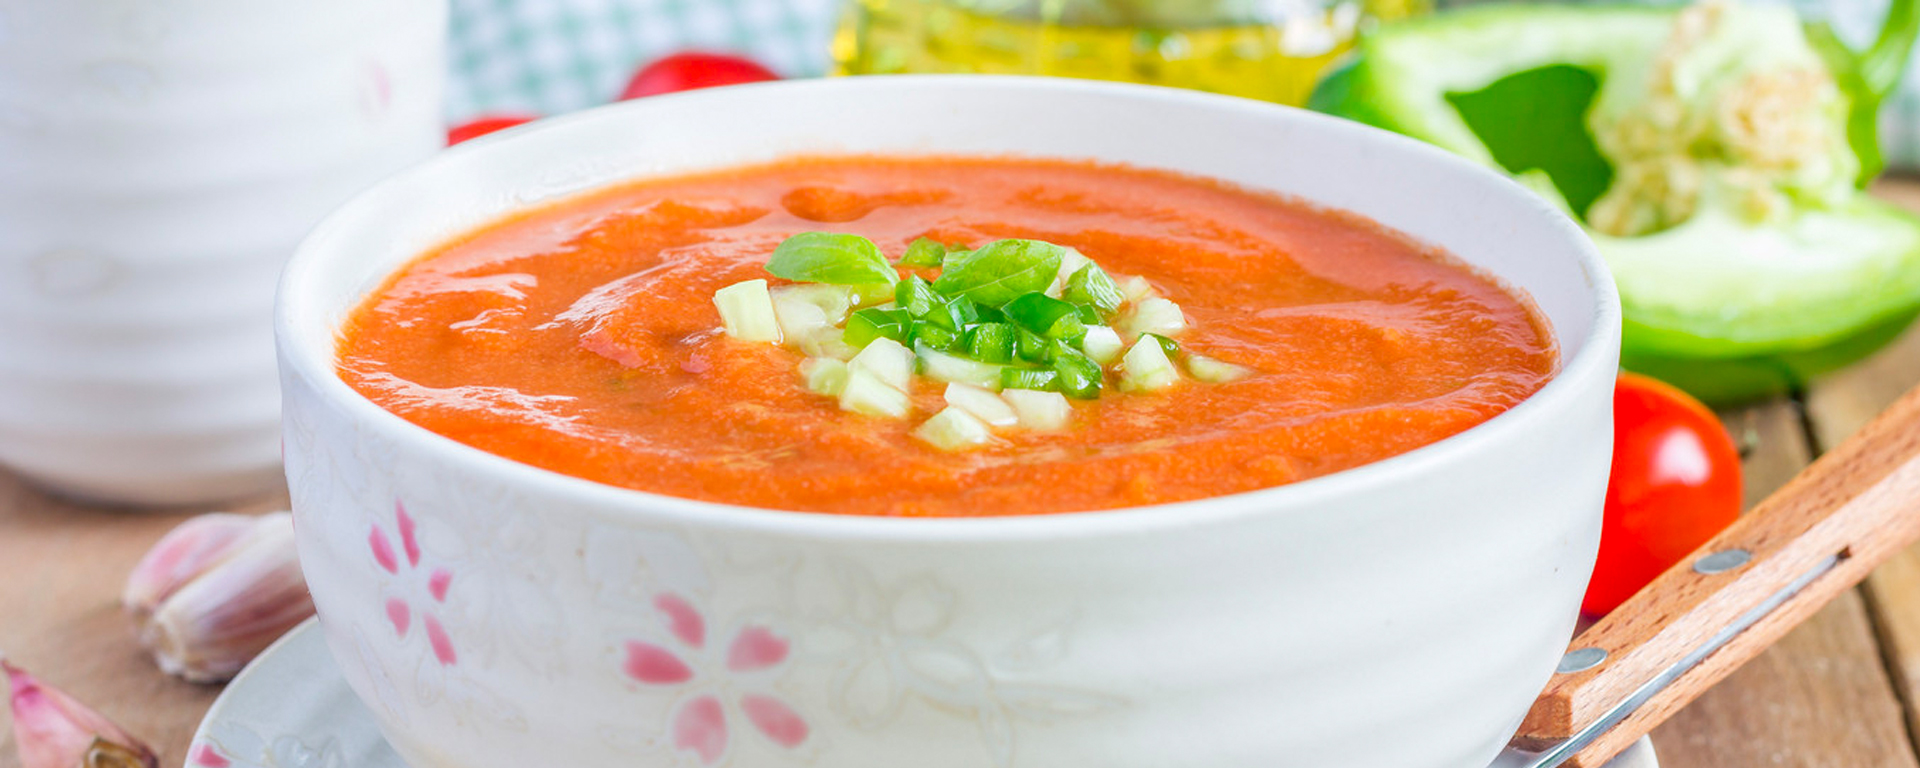 Photo for - Gaspacho dorée